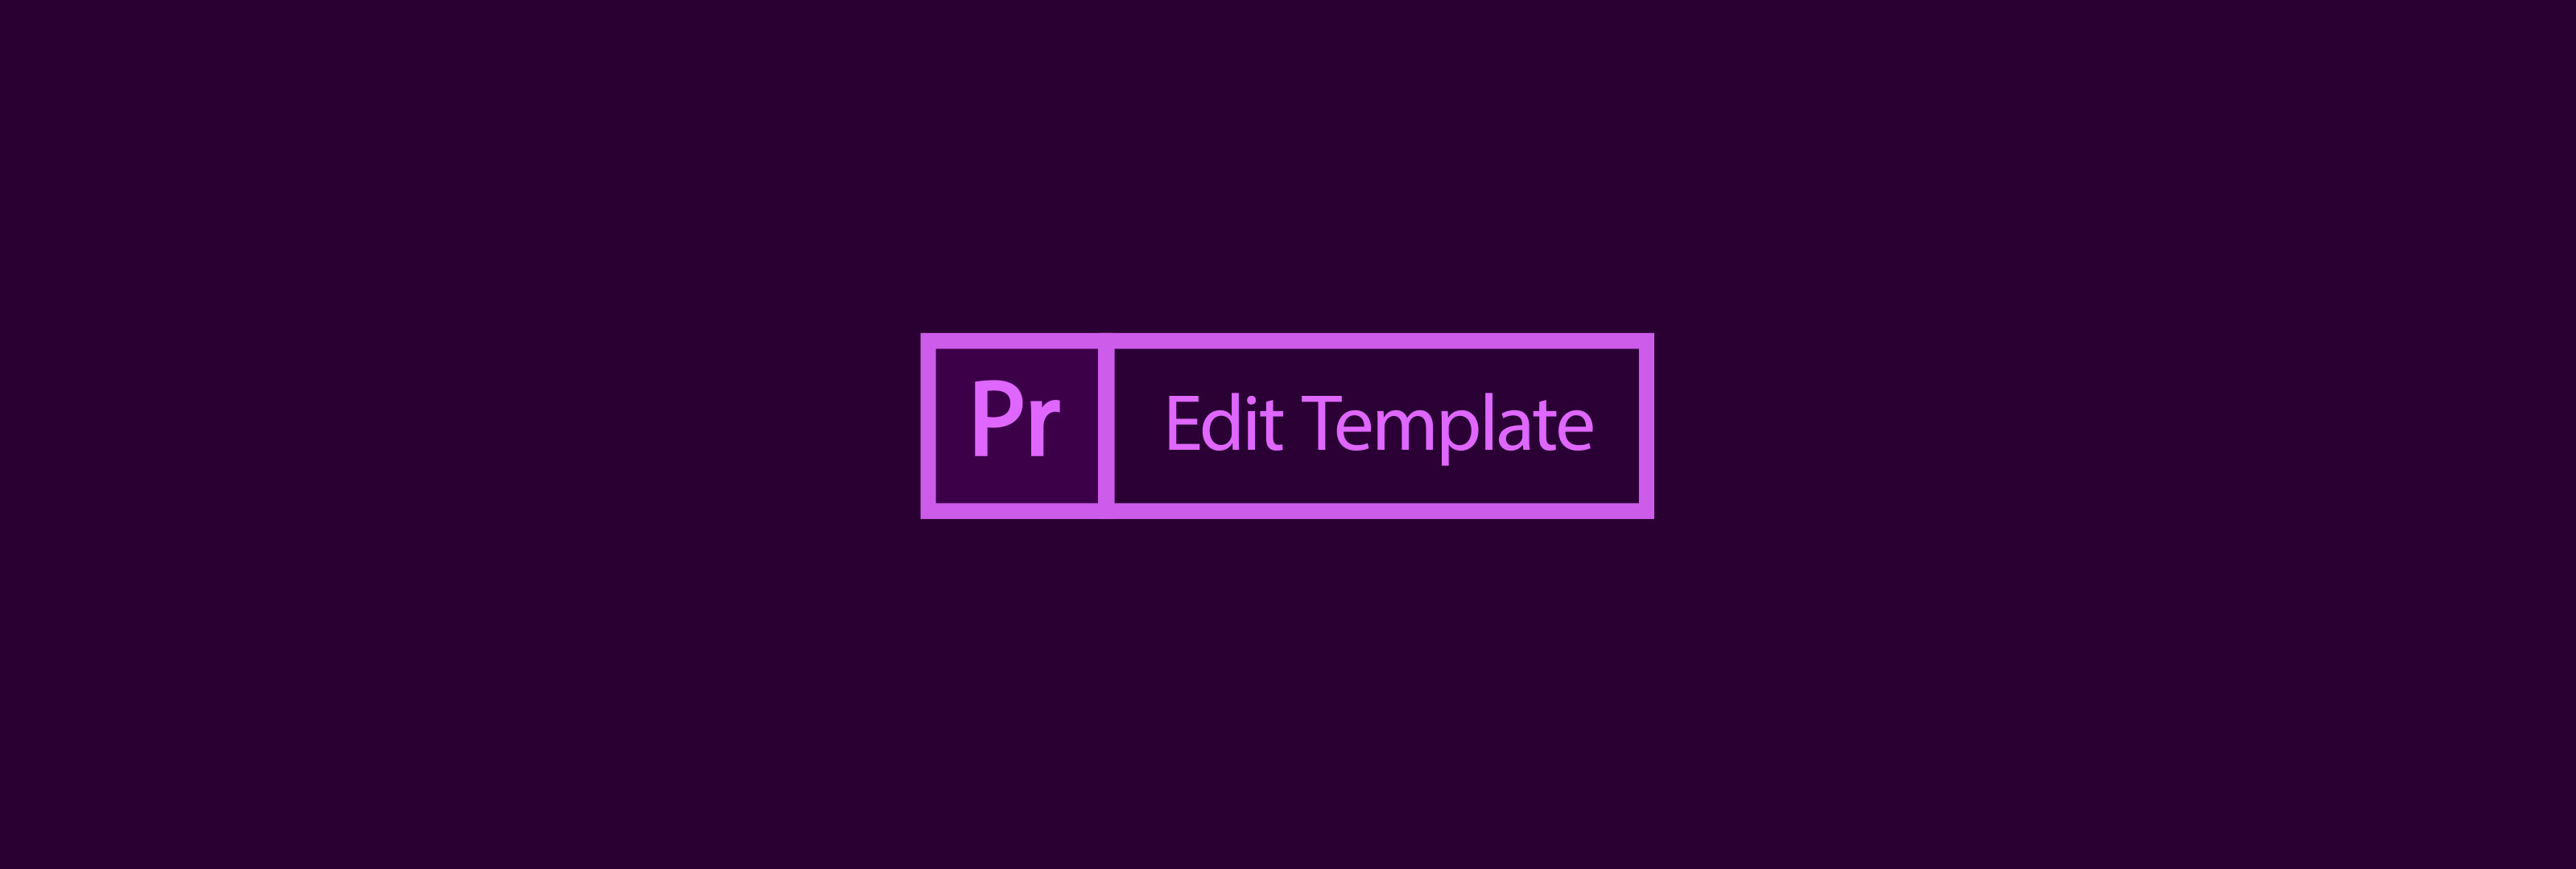 Free Premiere Pro Edit Template | Motion Array